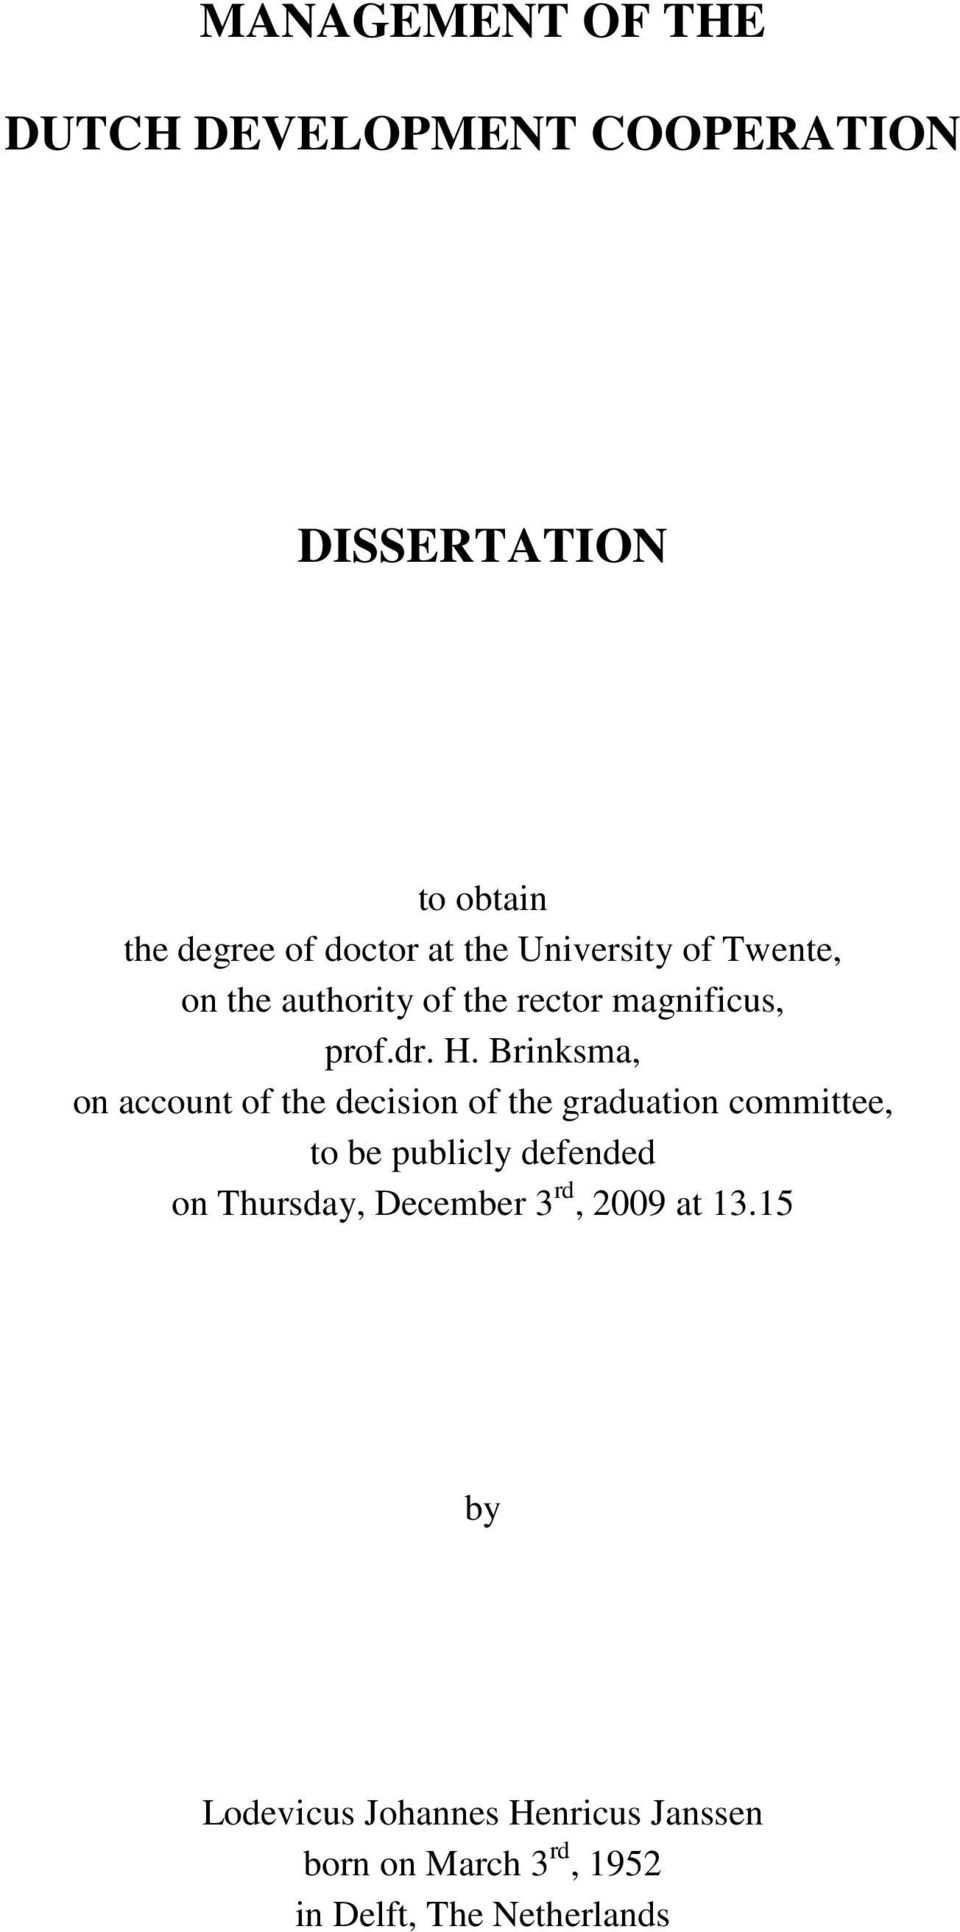 Brinksma, on account of the decision of the graduation committee, to be publicly defended on